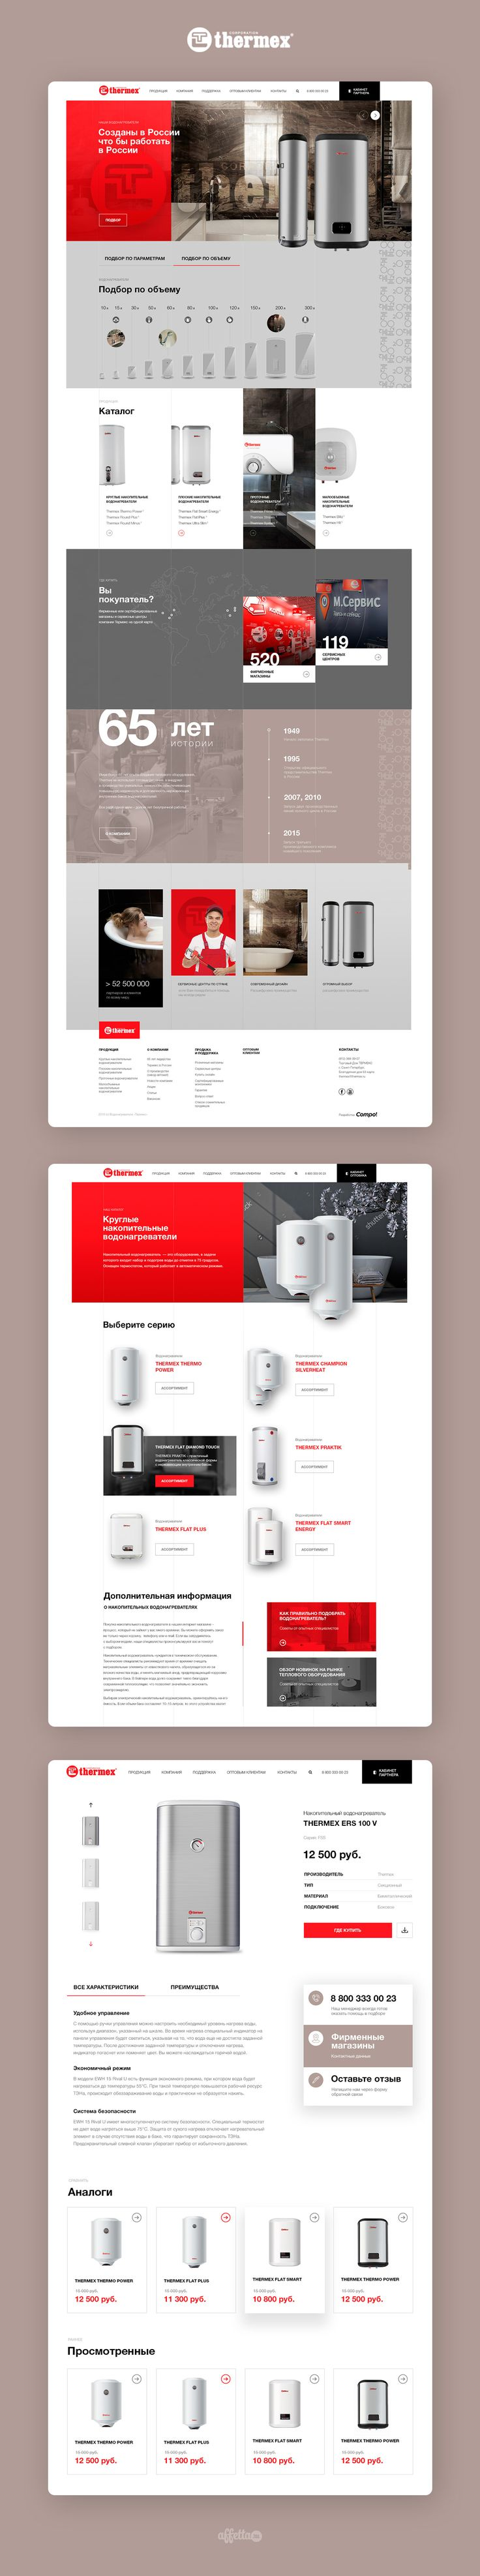 THERMEX e-commerce on Behance